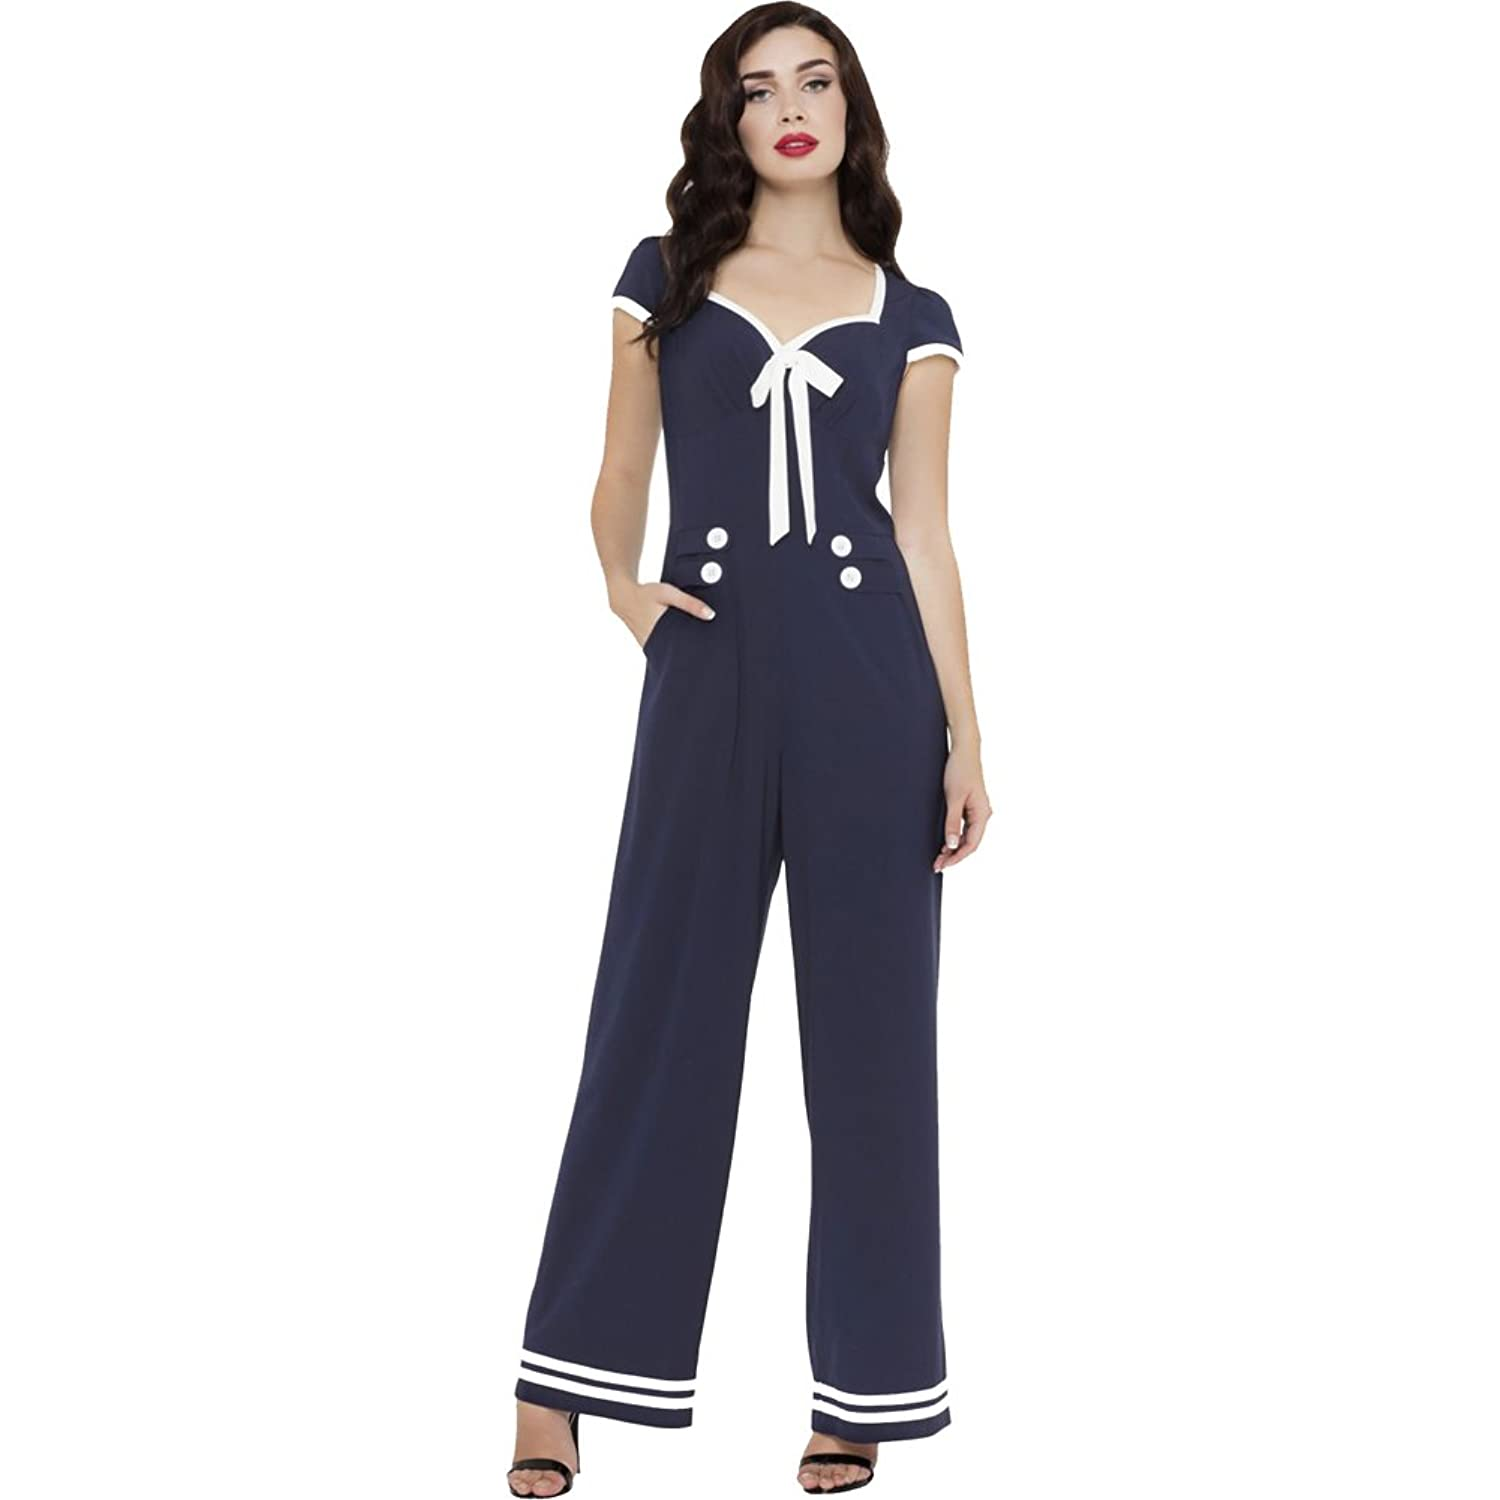 Vintage Wide Leg Pants 1920s to 1950s History Womens Voodoo Vixen JOLENE Nautical Stripped Wide Leg Jumpsuit Navy $73.95 AT vintagedancer.com